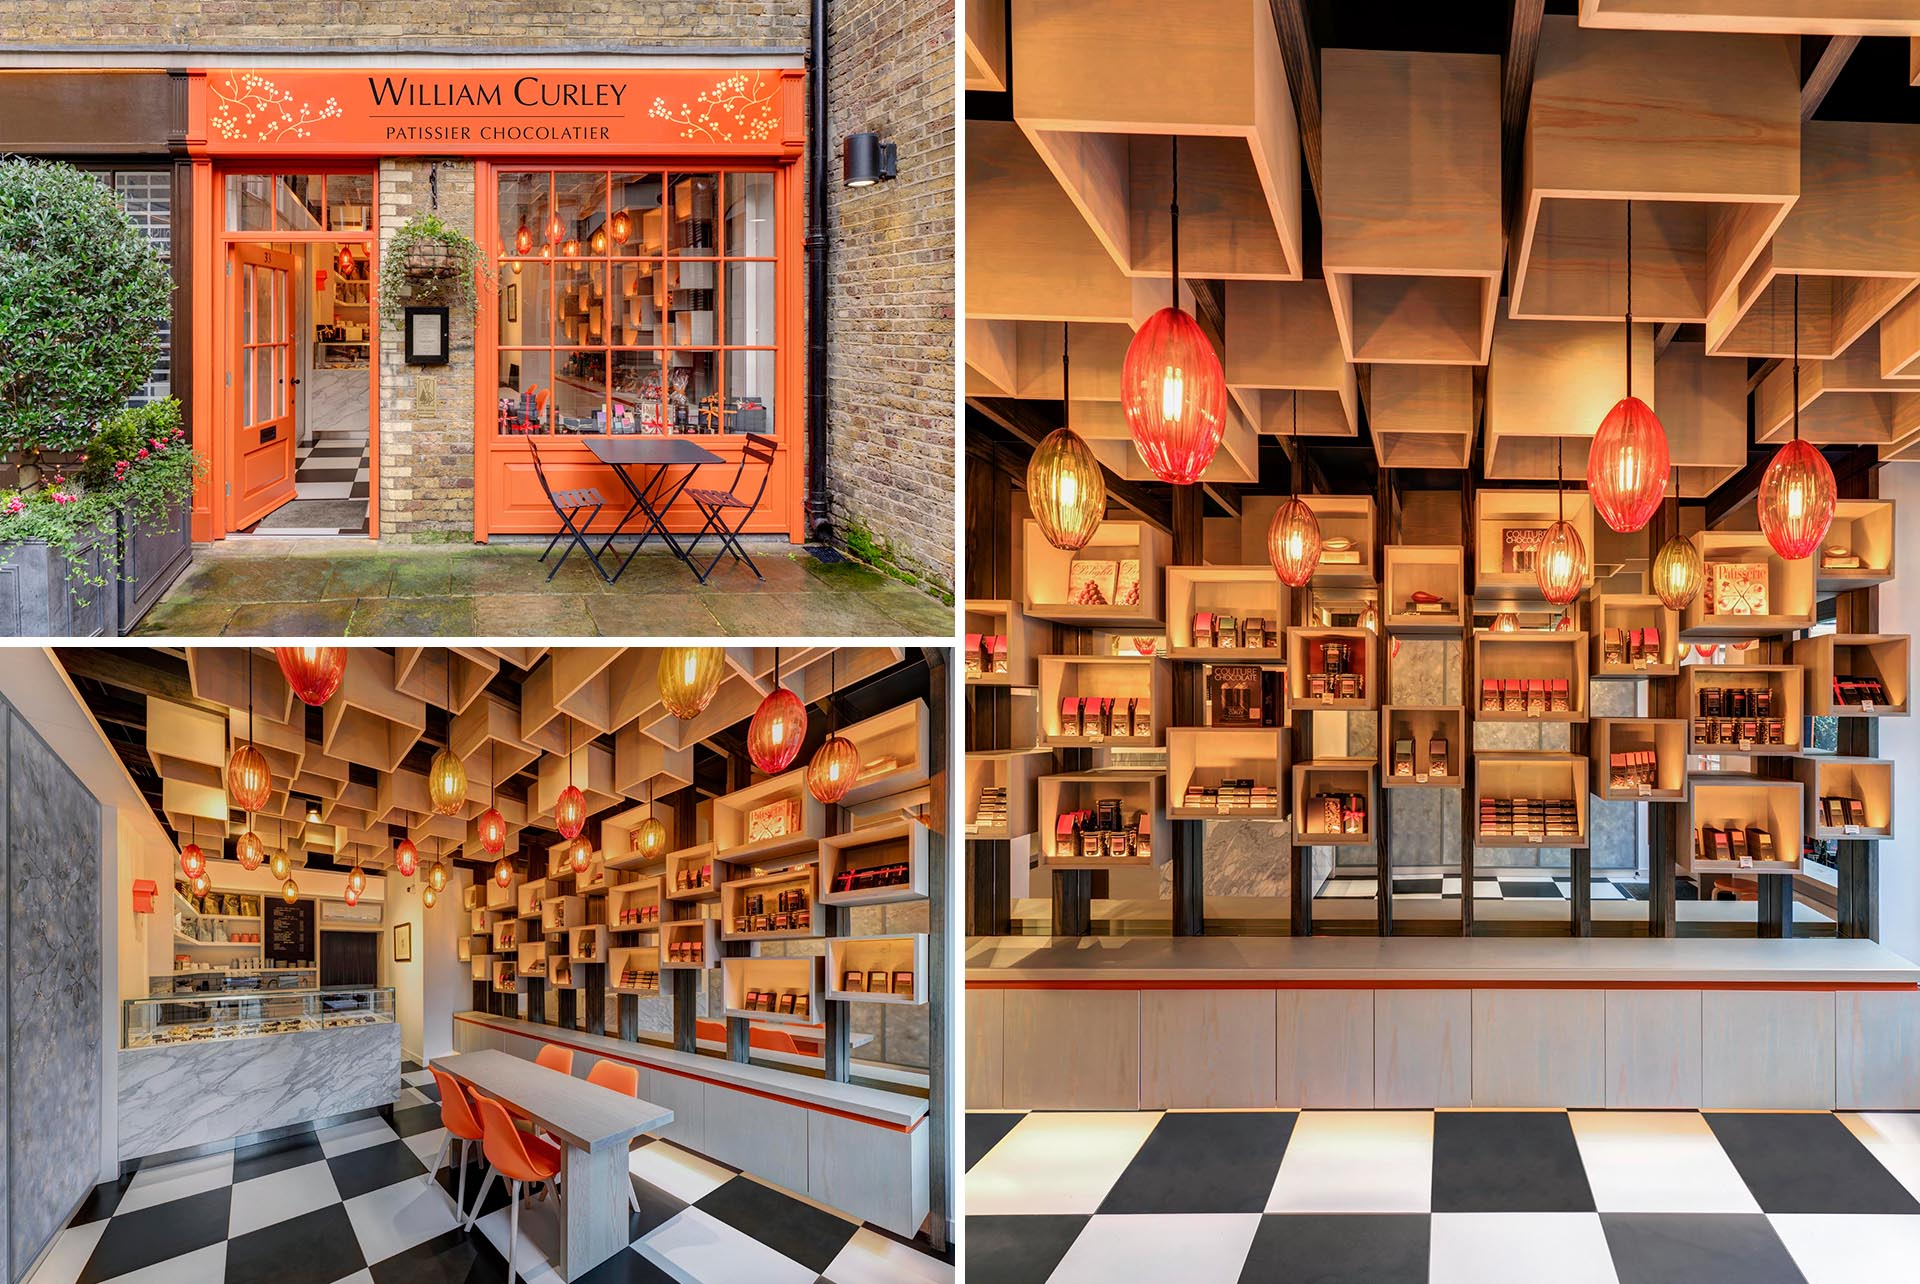 A modern chocolate boutique with a vivid orange facade that draws inspiration from the lid of the boxes the chocolates are packaged in.